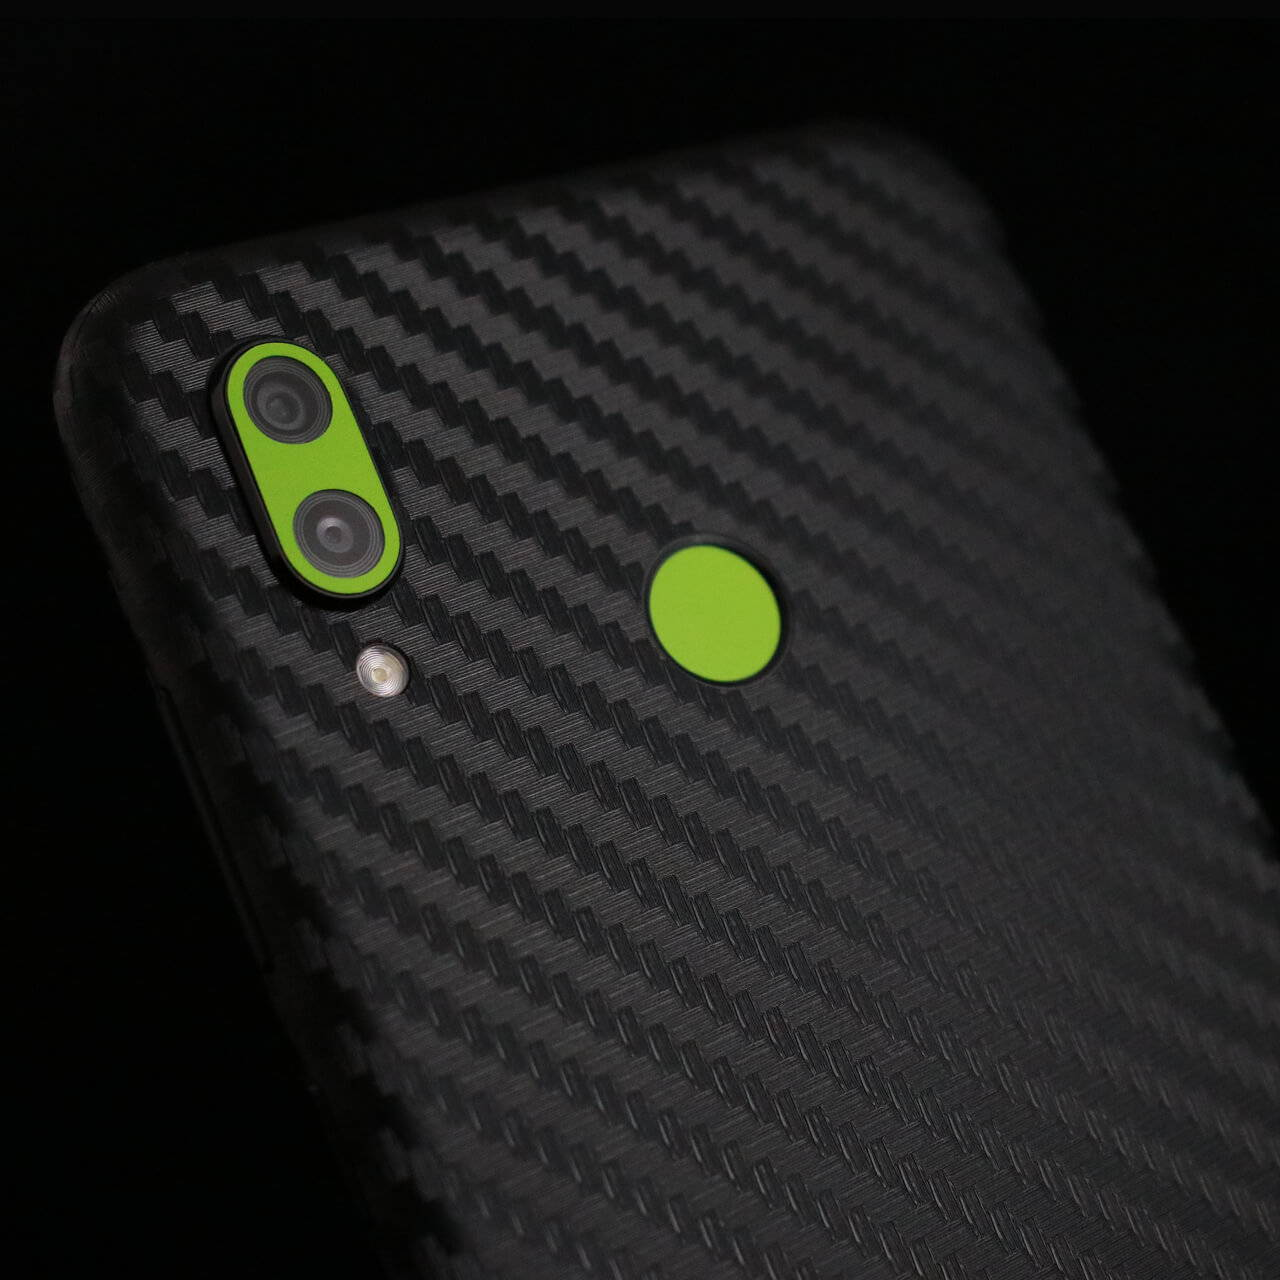 Honor Play Black Carbon Fibre and Matt Green Skins